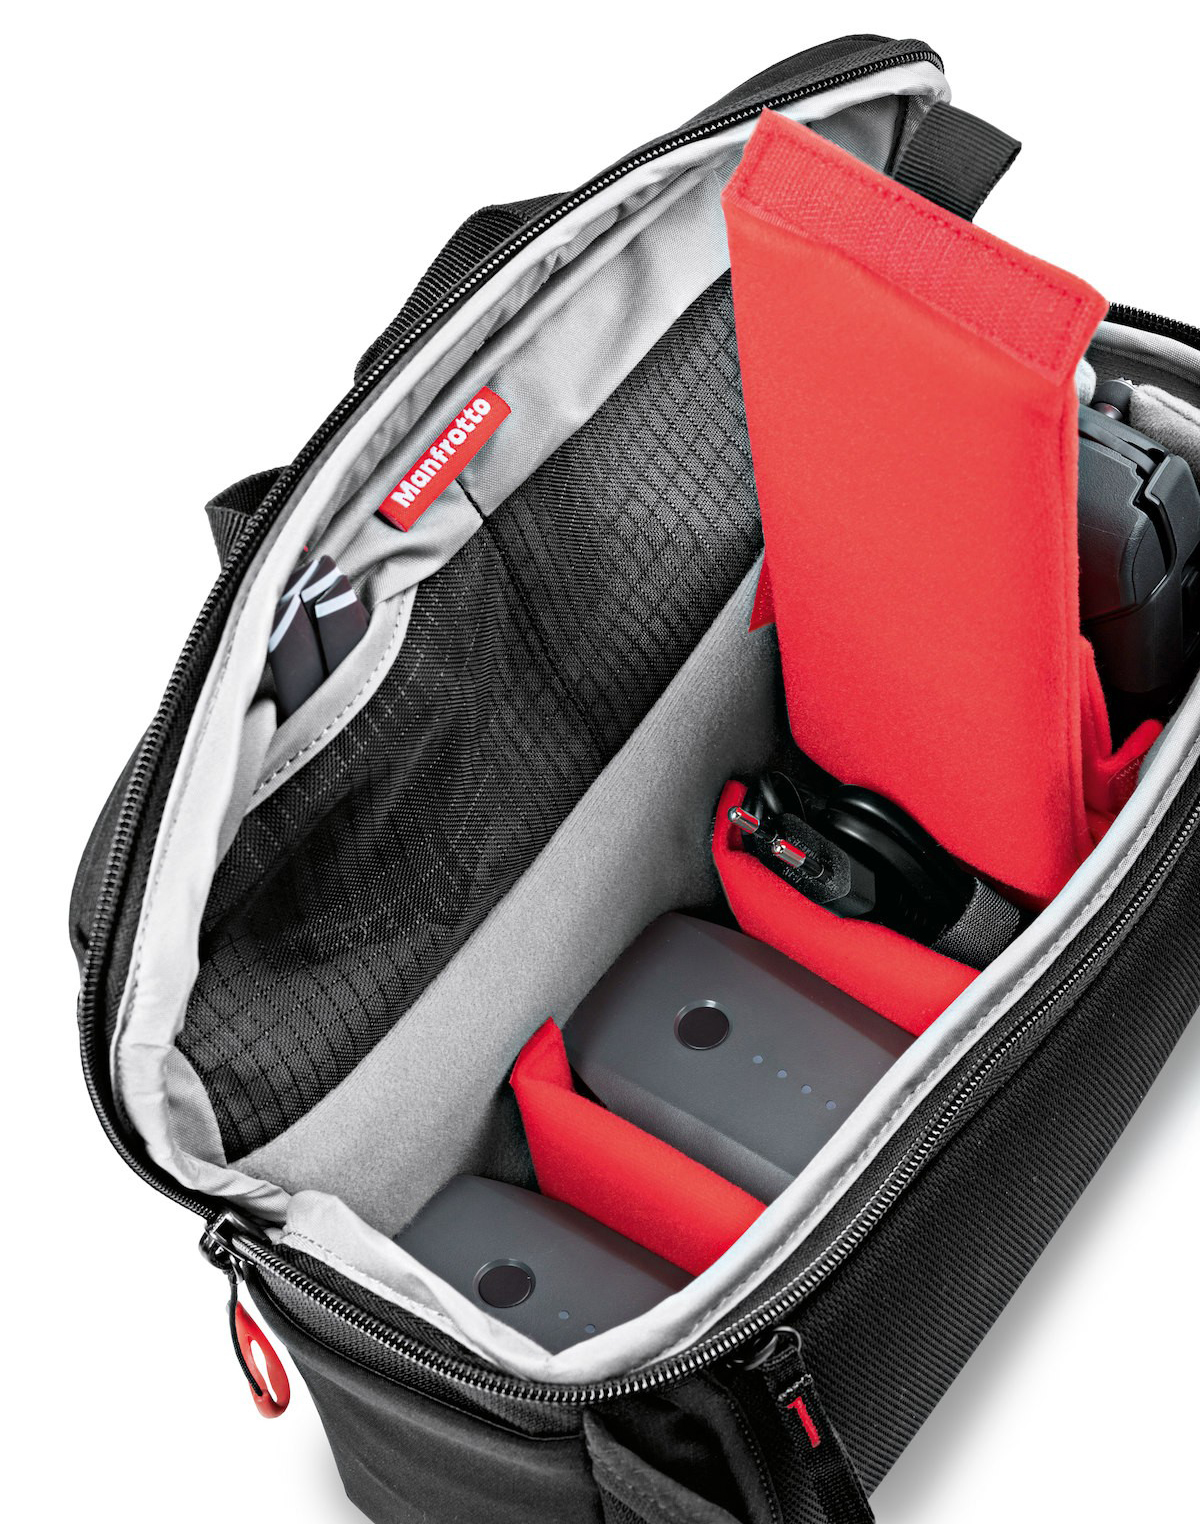 Accessories Bags Trolley Bag Foldable Broncolor P3 News Reviews Hands On With The Manfrotto Aviator Drone Sling